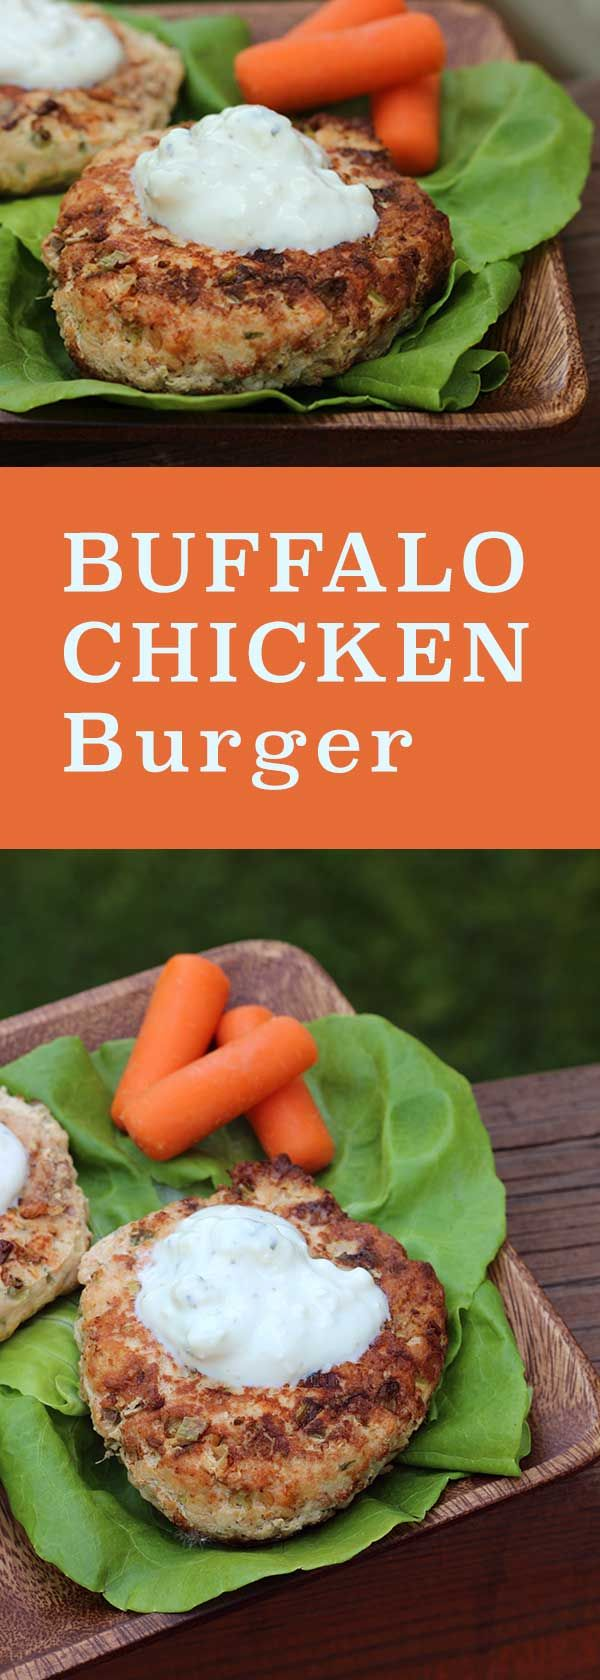 Buffalo Chicken Burger - wrapped in lettuce to make it low-carb | diabeticfoodie.com